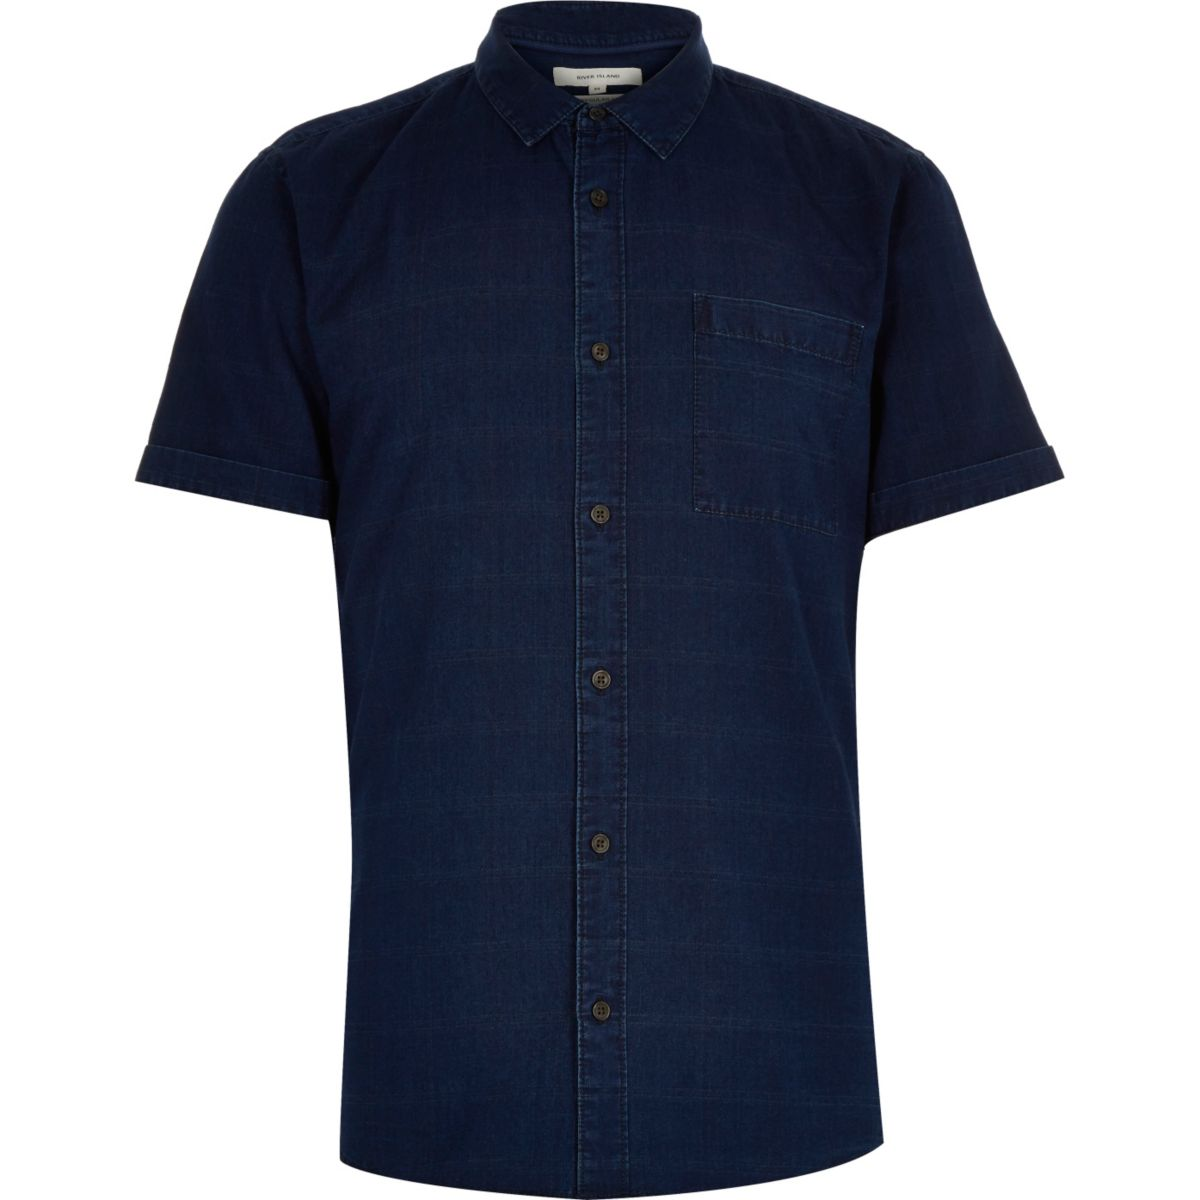 Navy denim grid print short sleeve shirt